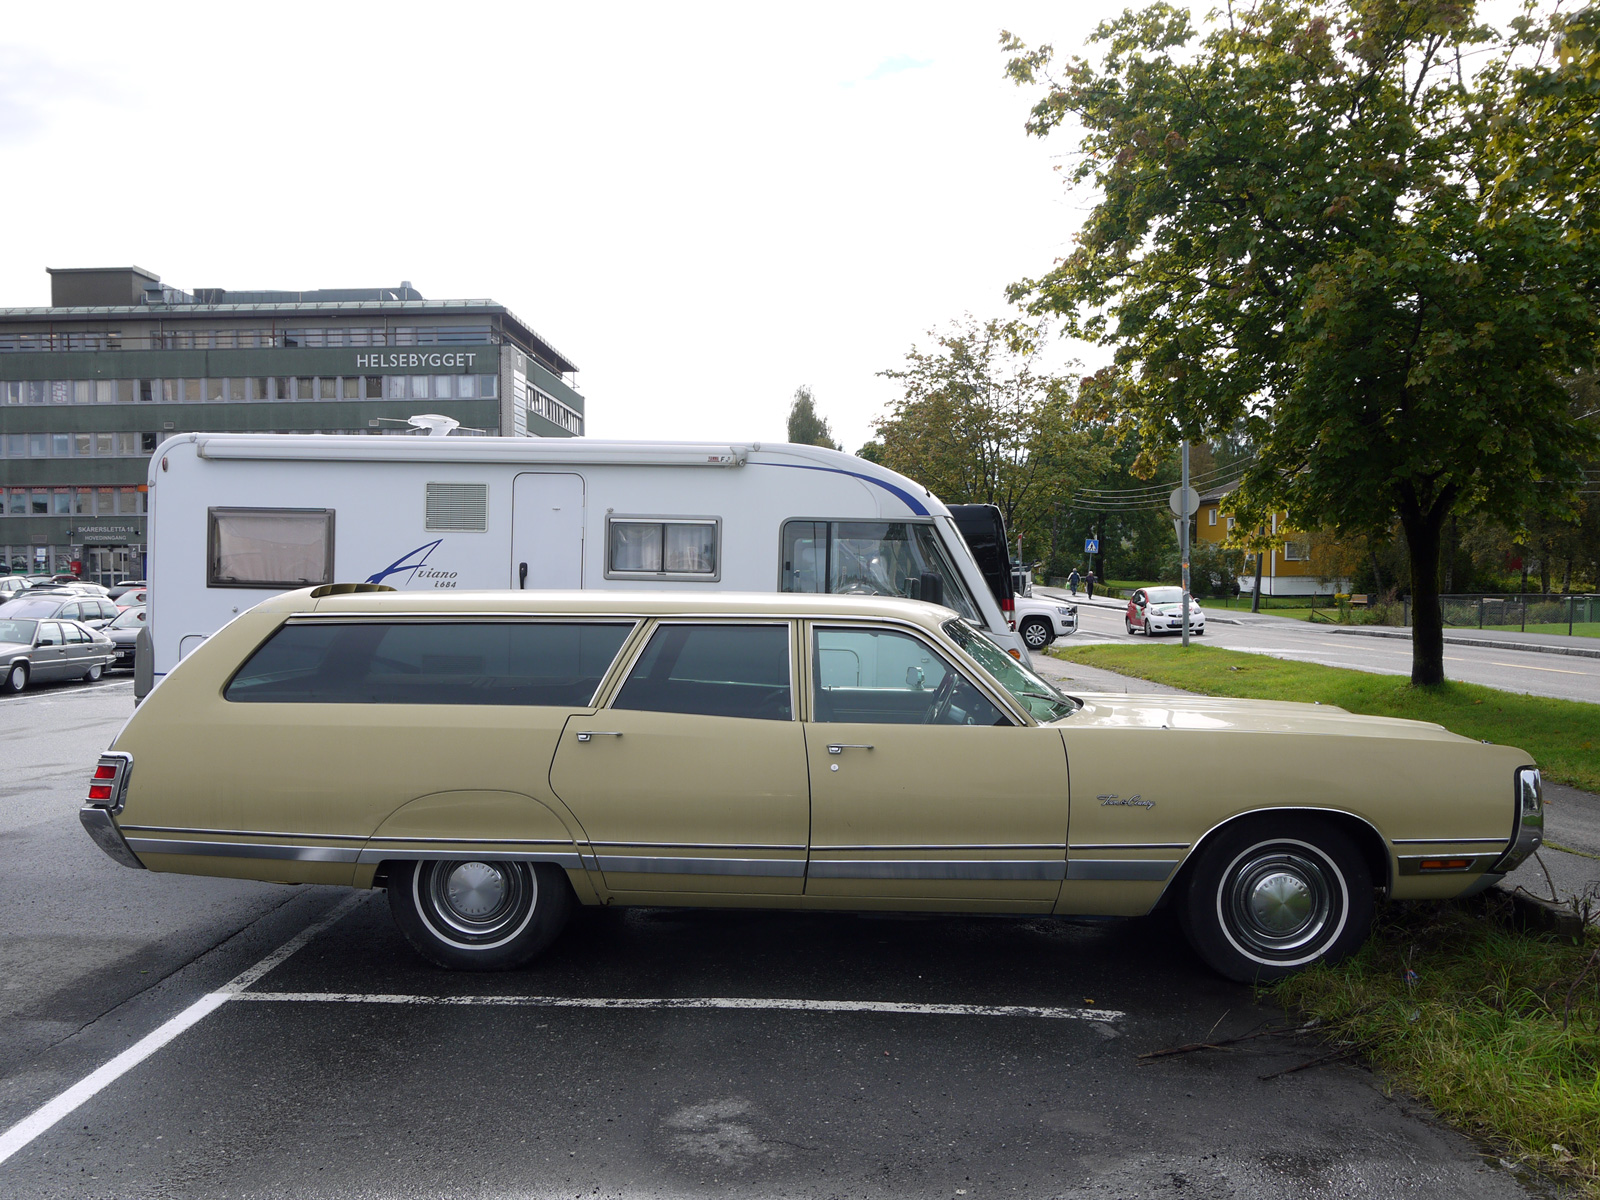 1972 Chrysler Town & Country New Yorker fuselage design